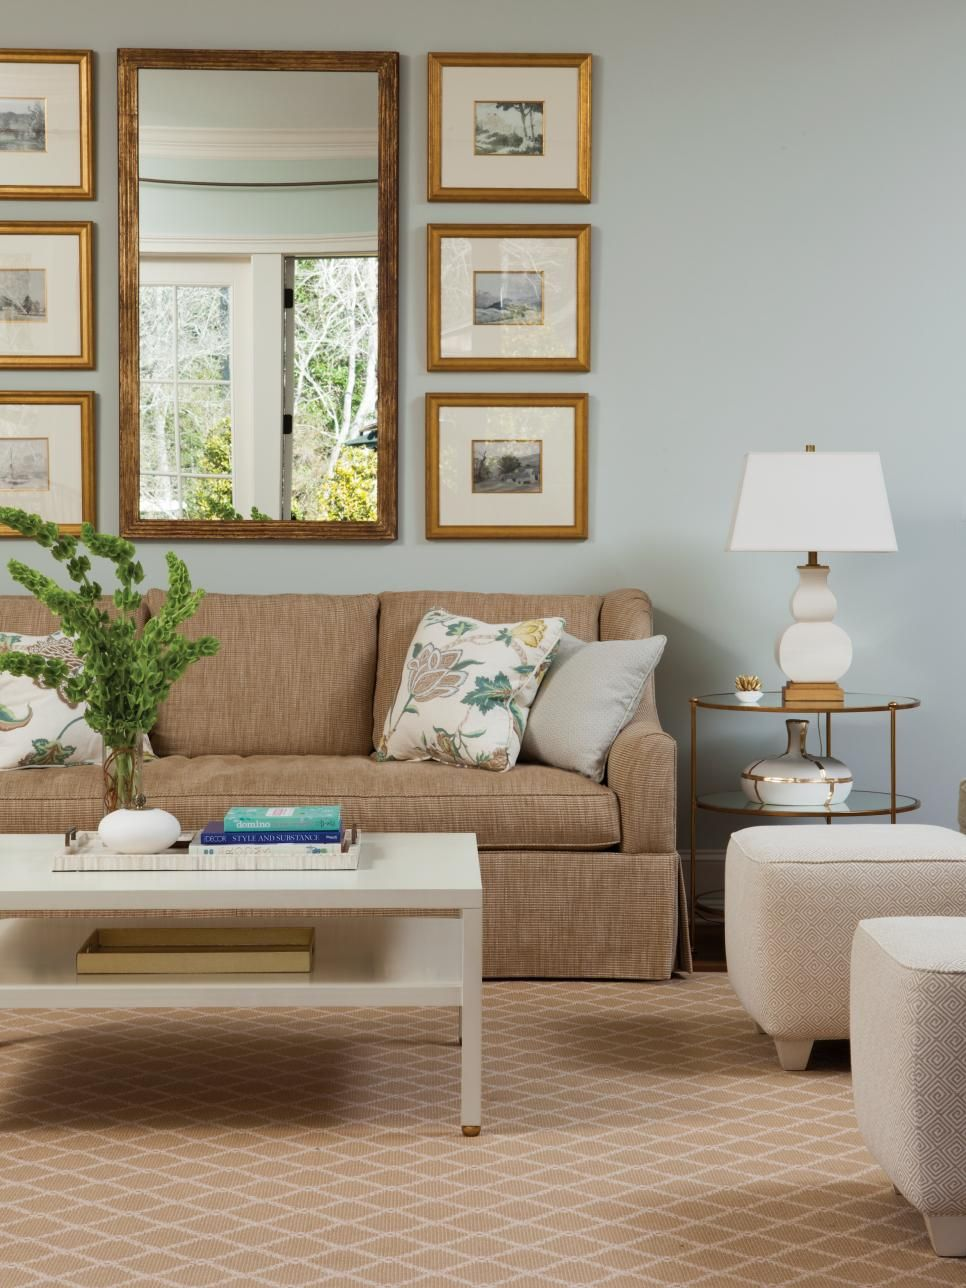 Superior Light Blue Walls Are Paired With Neutral Furniture And Accessories For A  Light, Airy Living Room. To Add Visual Interest To The Neutral Furnishings,  ...